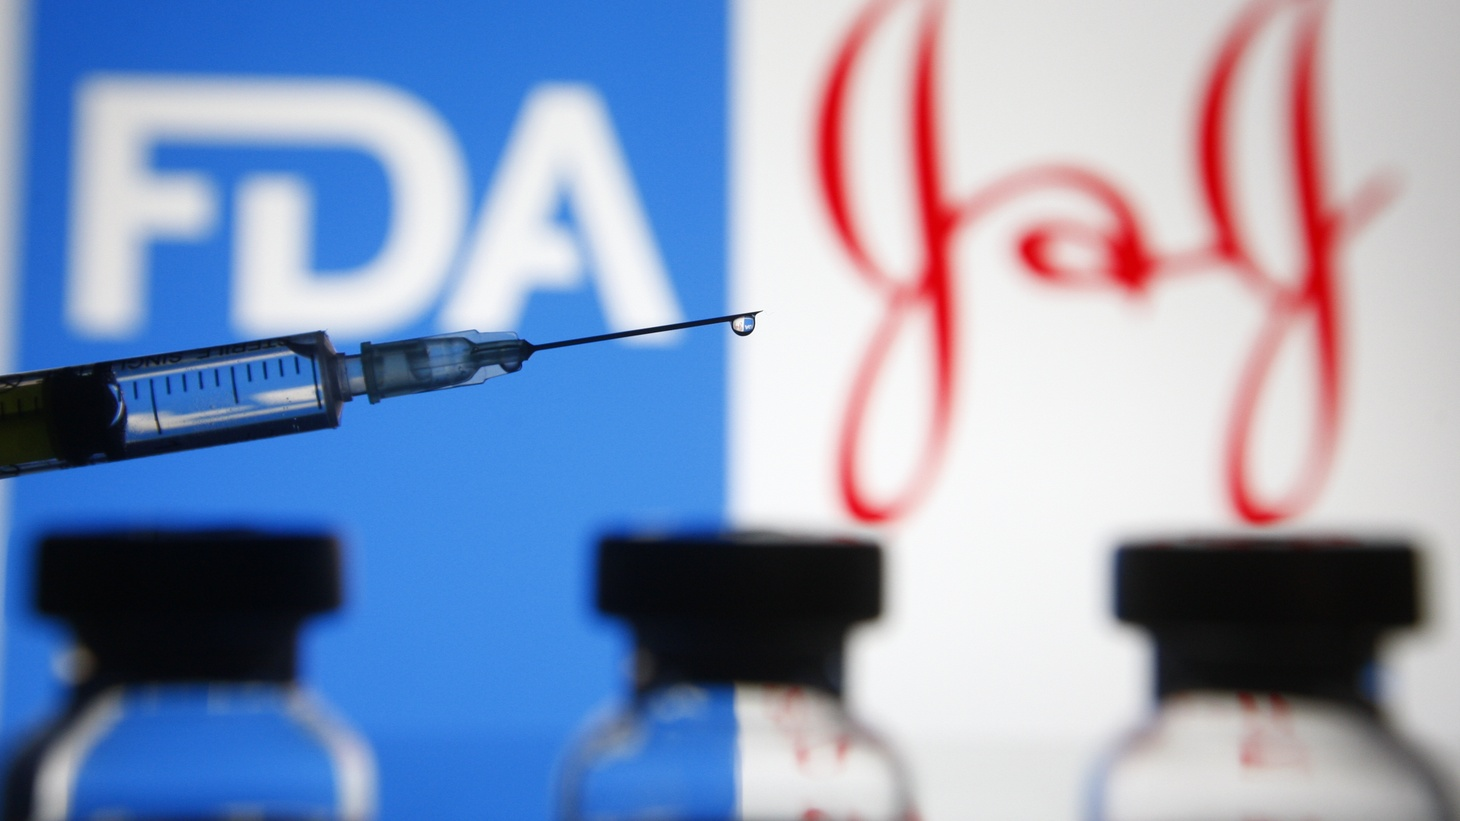 Food and Drug Administration (FDA) and Johnson & Johnson (J&J) logos are seen in front of a medical syringe and vials. On February 27, 2021, the FDA authorized Johnson & Johnson's coronavirus vaccine for emergency use.